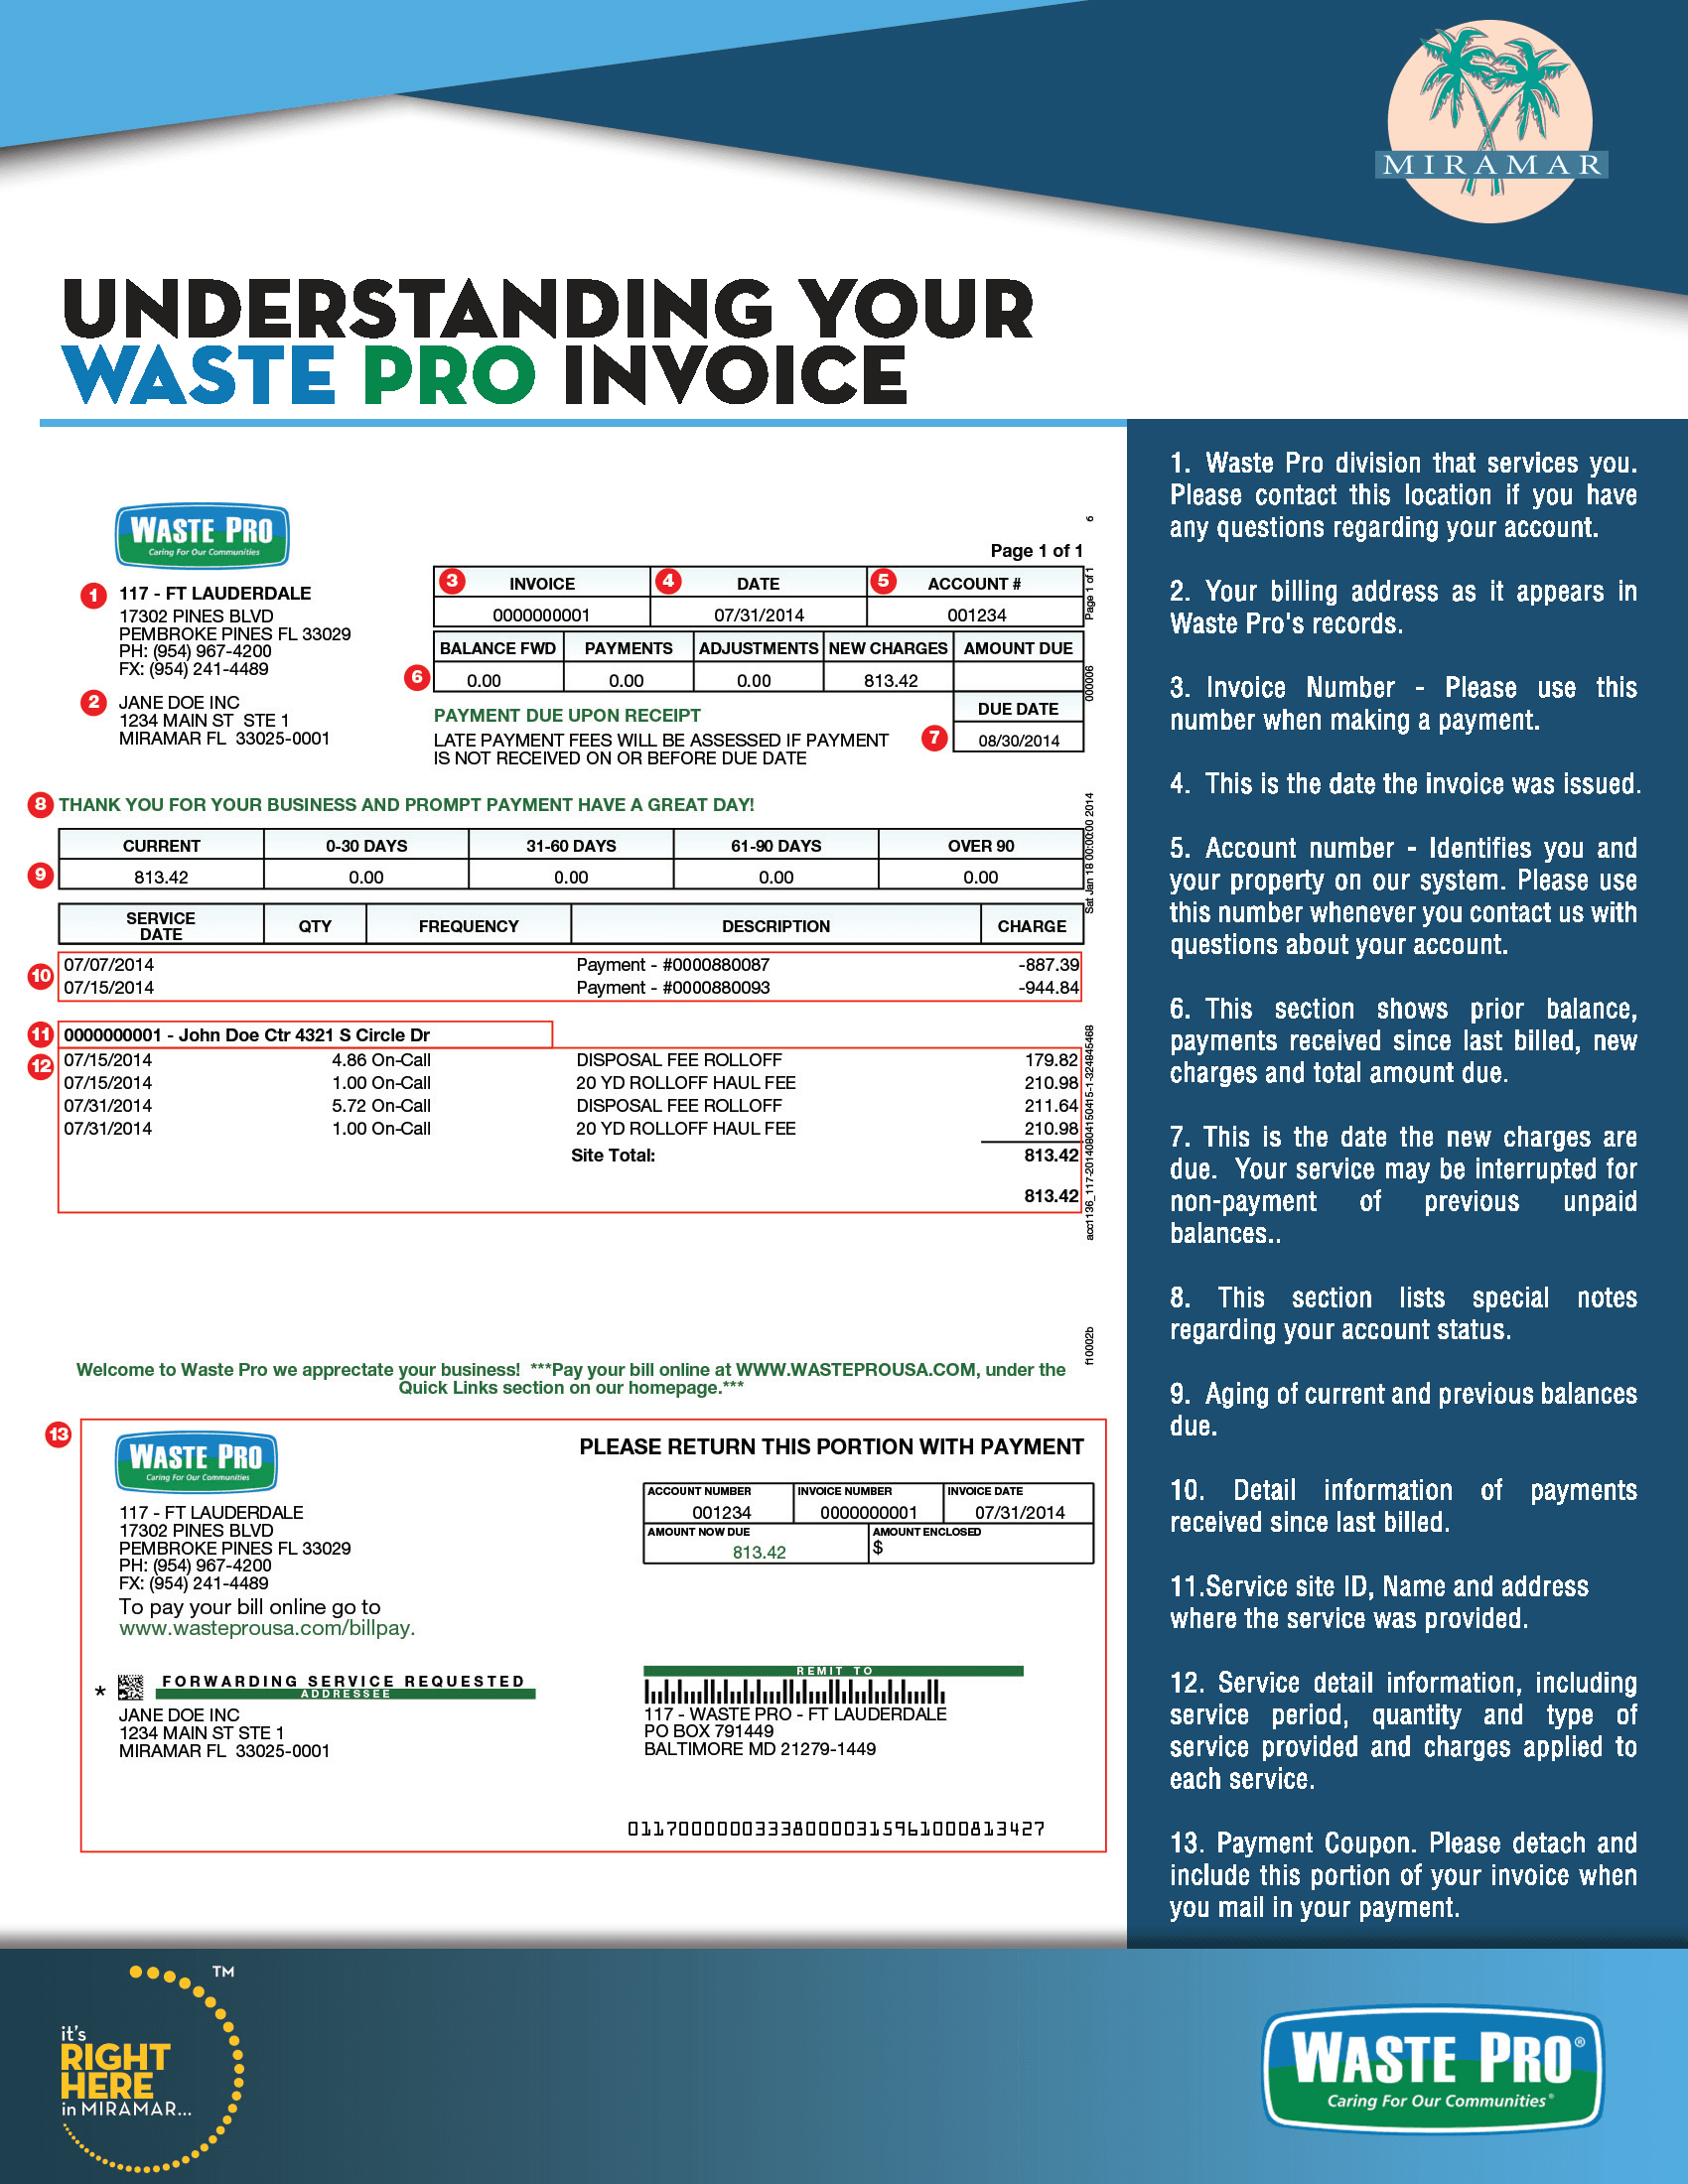 Sample Bill - Understanding your Waste Pro Invoice